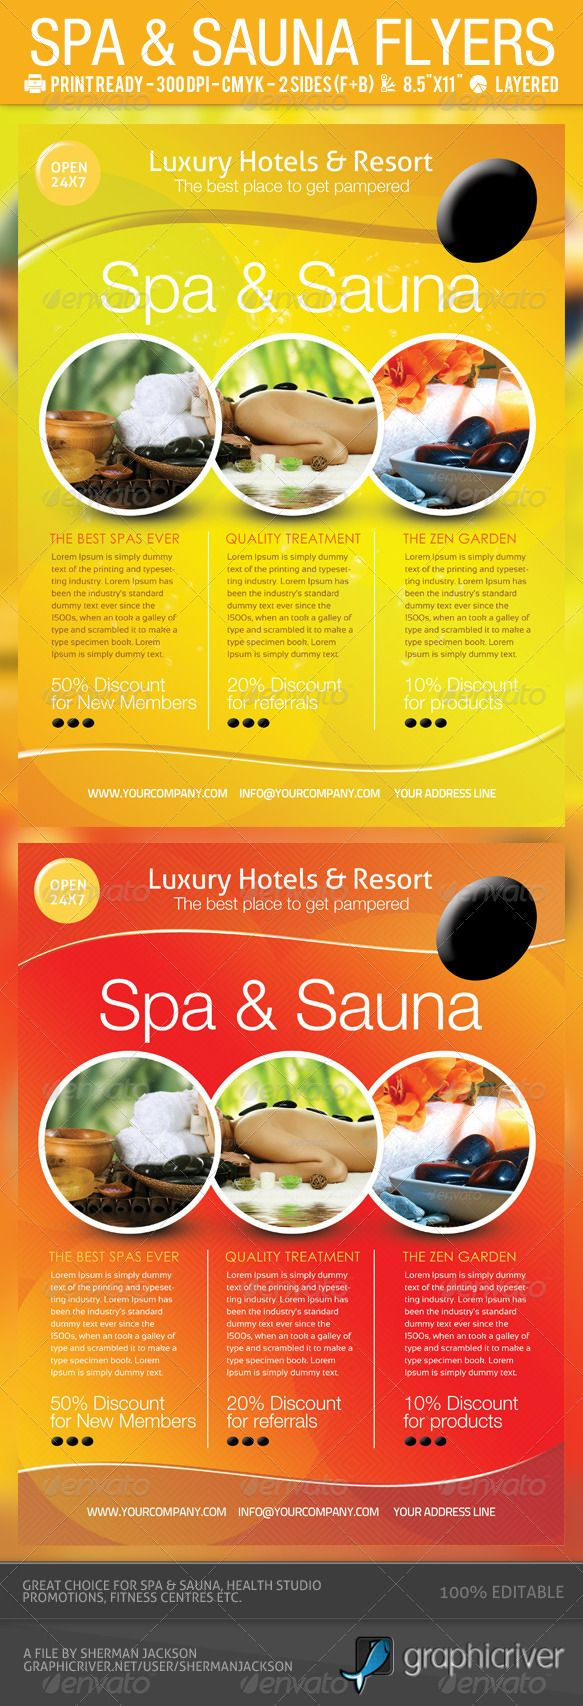 spa sauna flyers psd template adobe photoshop signage and adobe spa sauna flyers psd template